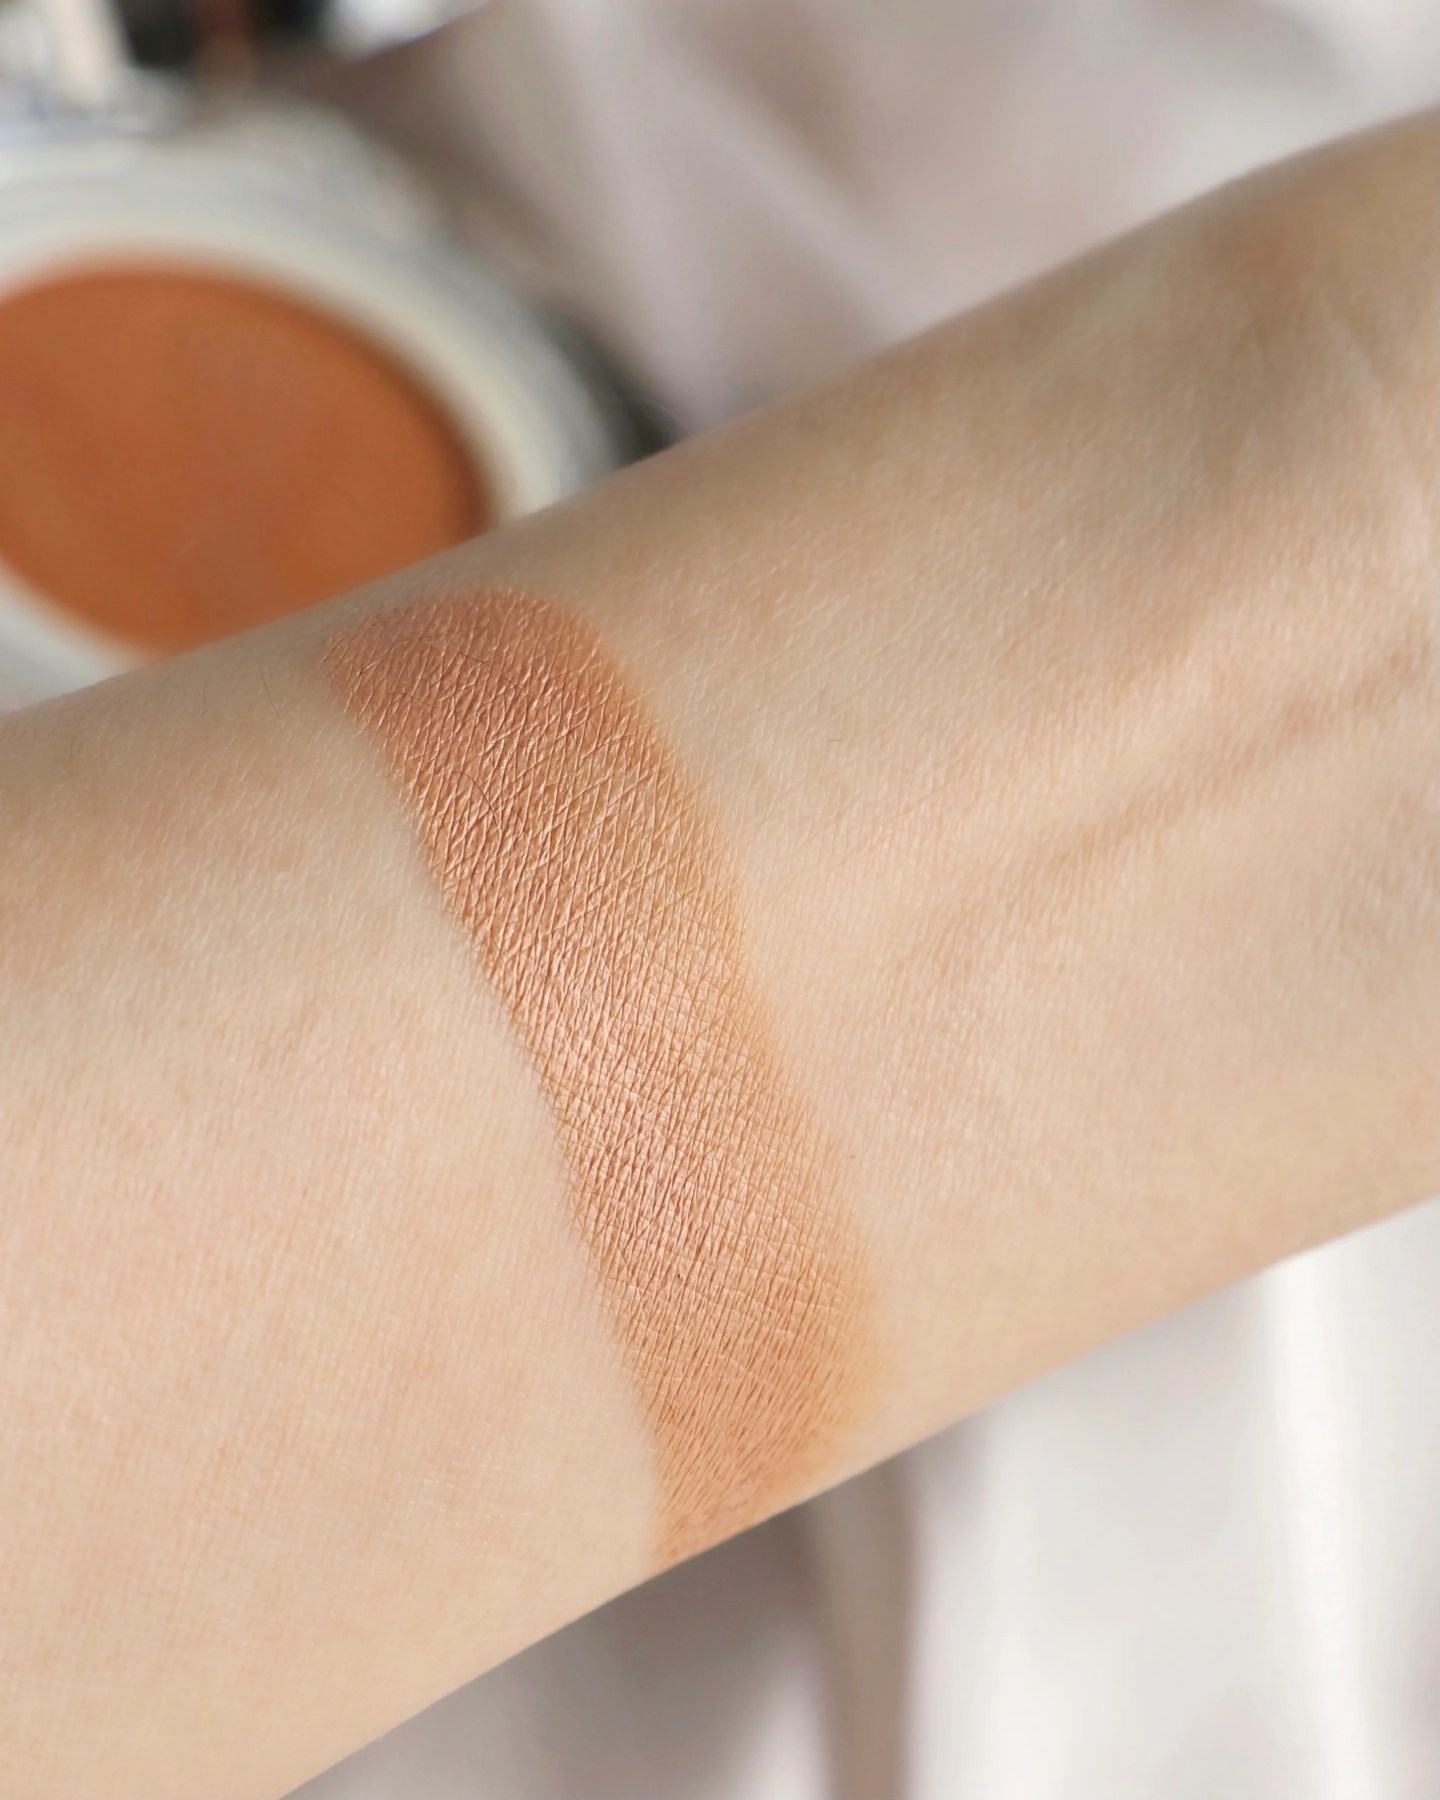 Chantecaille Future Skin Cushion Skincare Foundation Review & Swatches